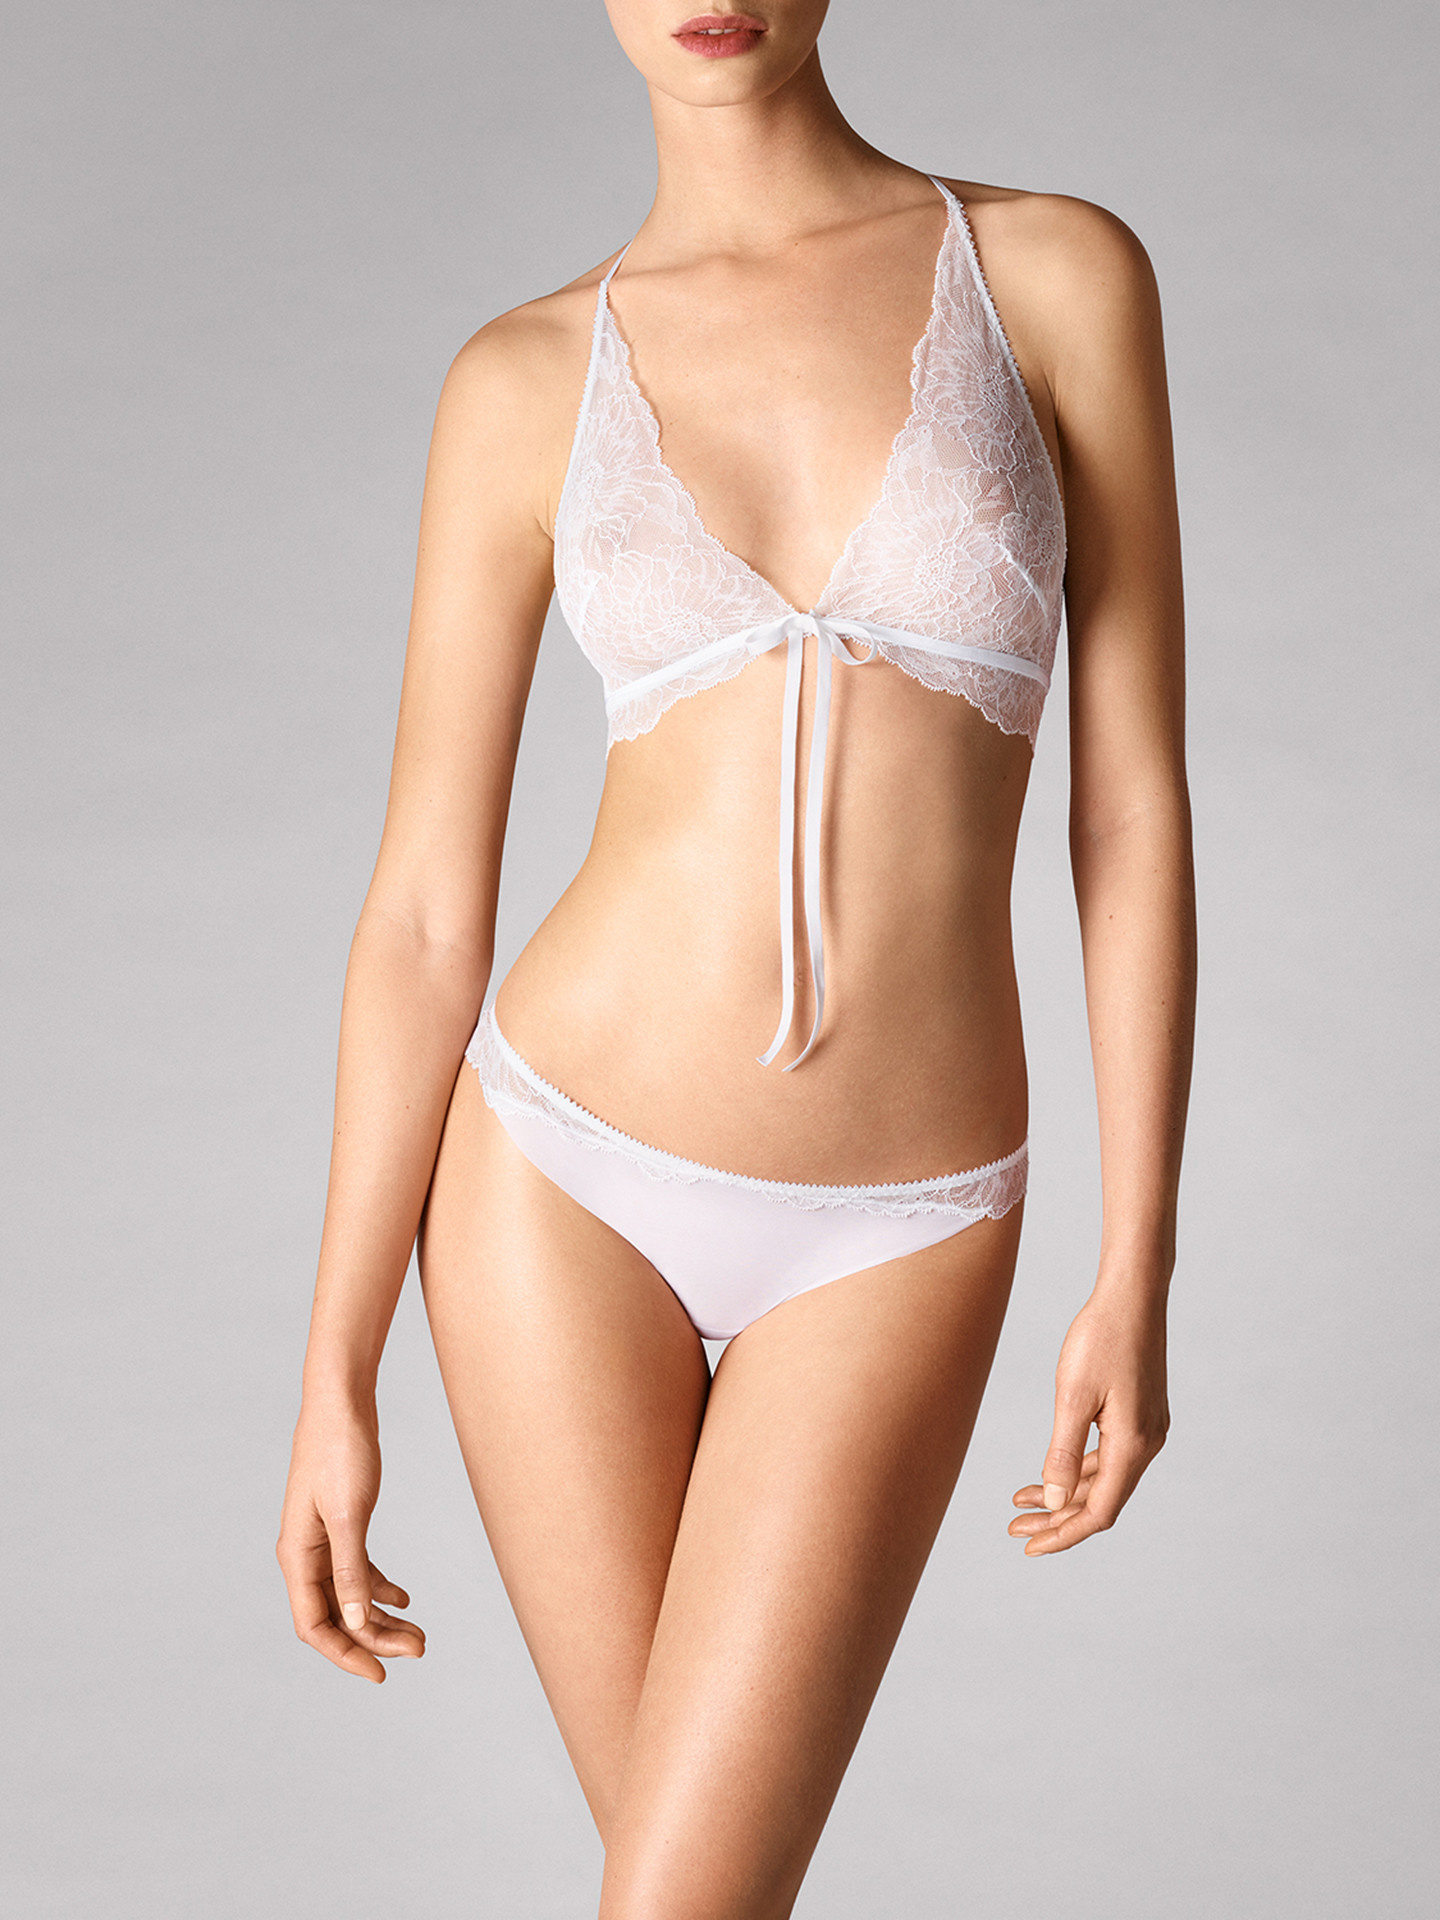 WOLFORD 69743 Stretch Lace Triangle Bra